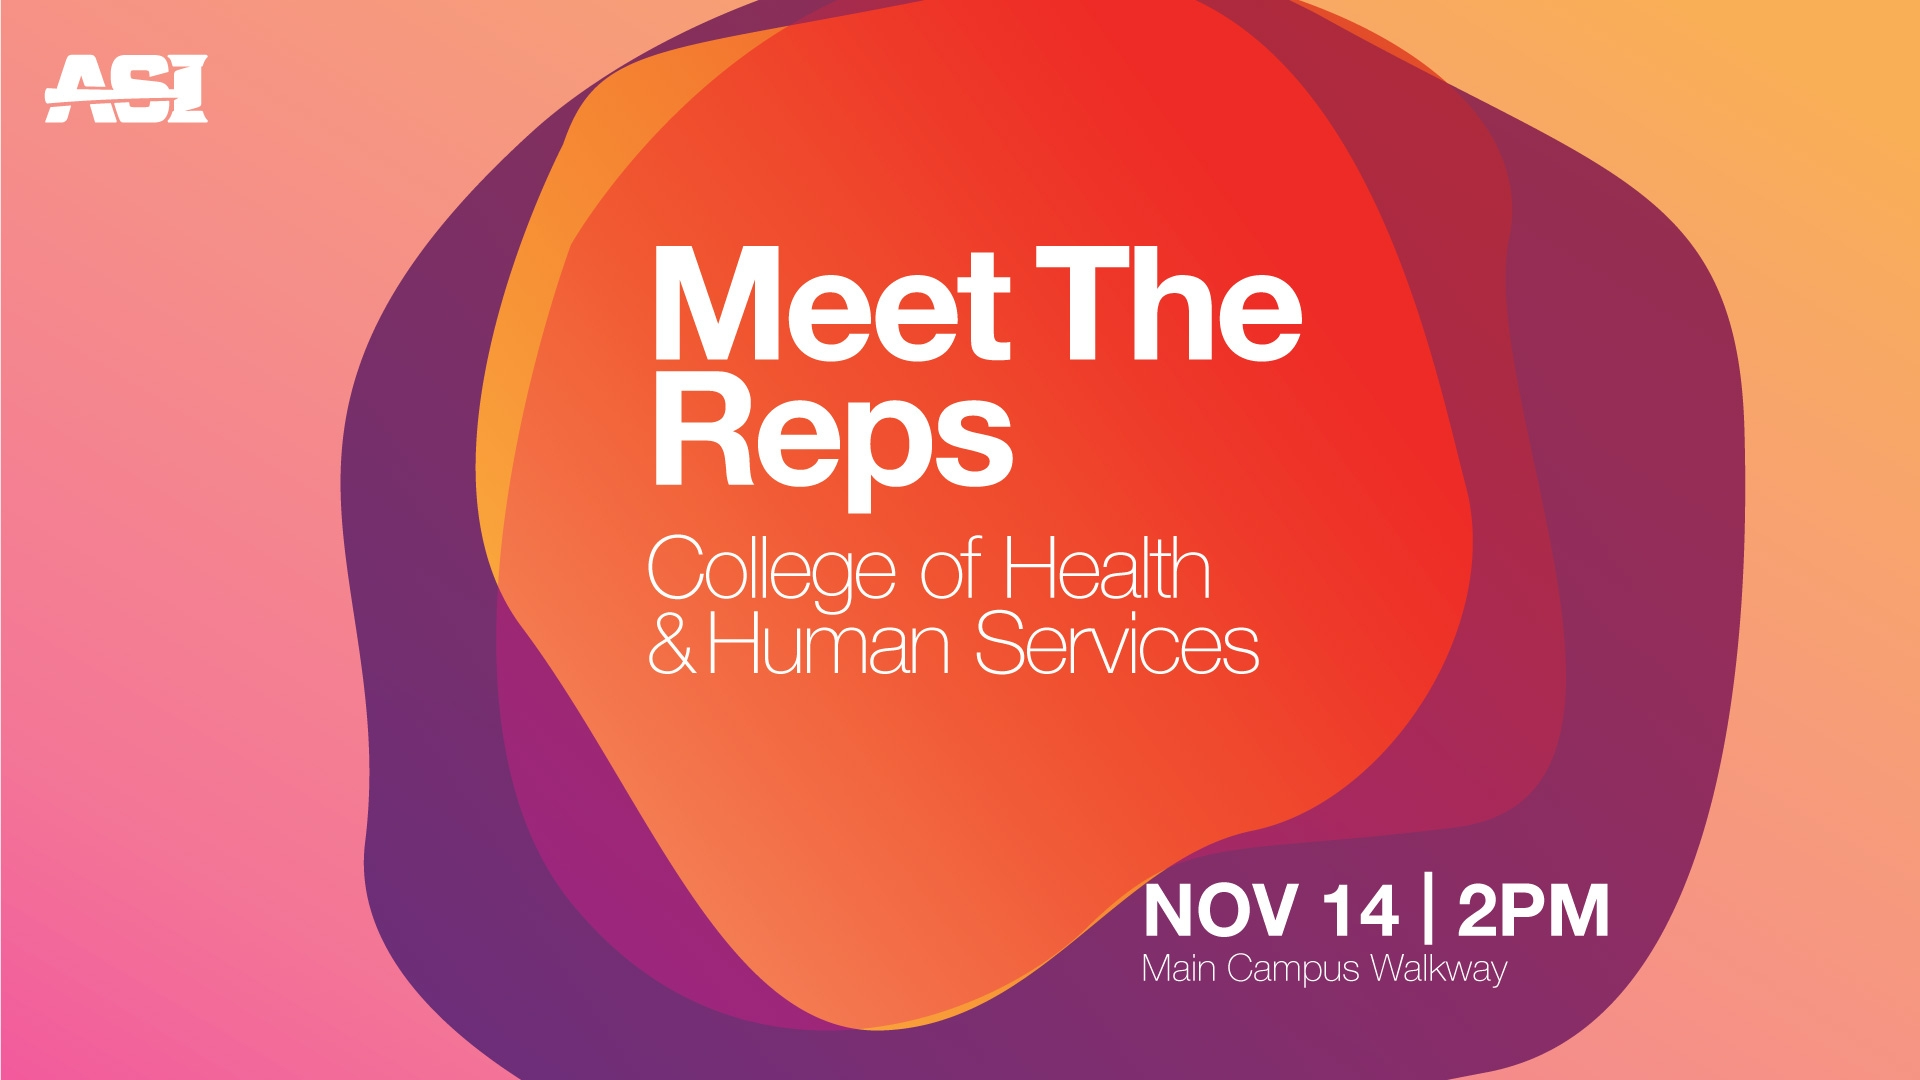 Meet the Reps: Health and Human Services College